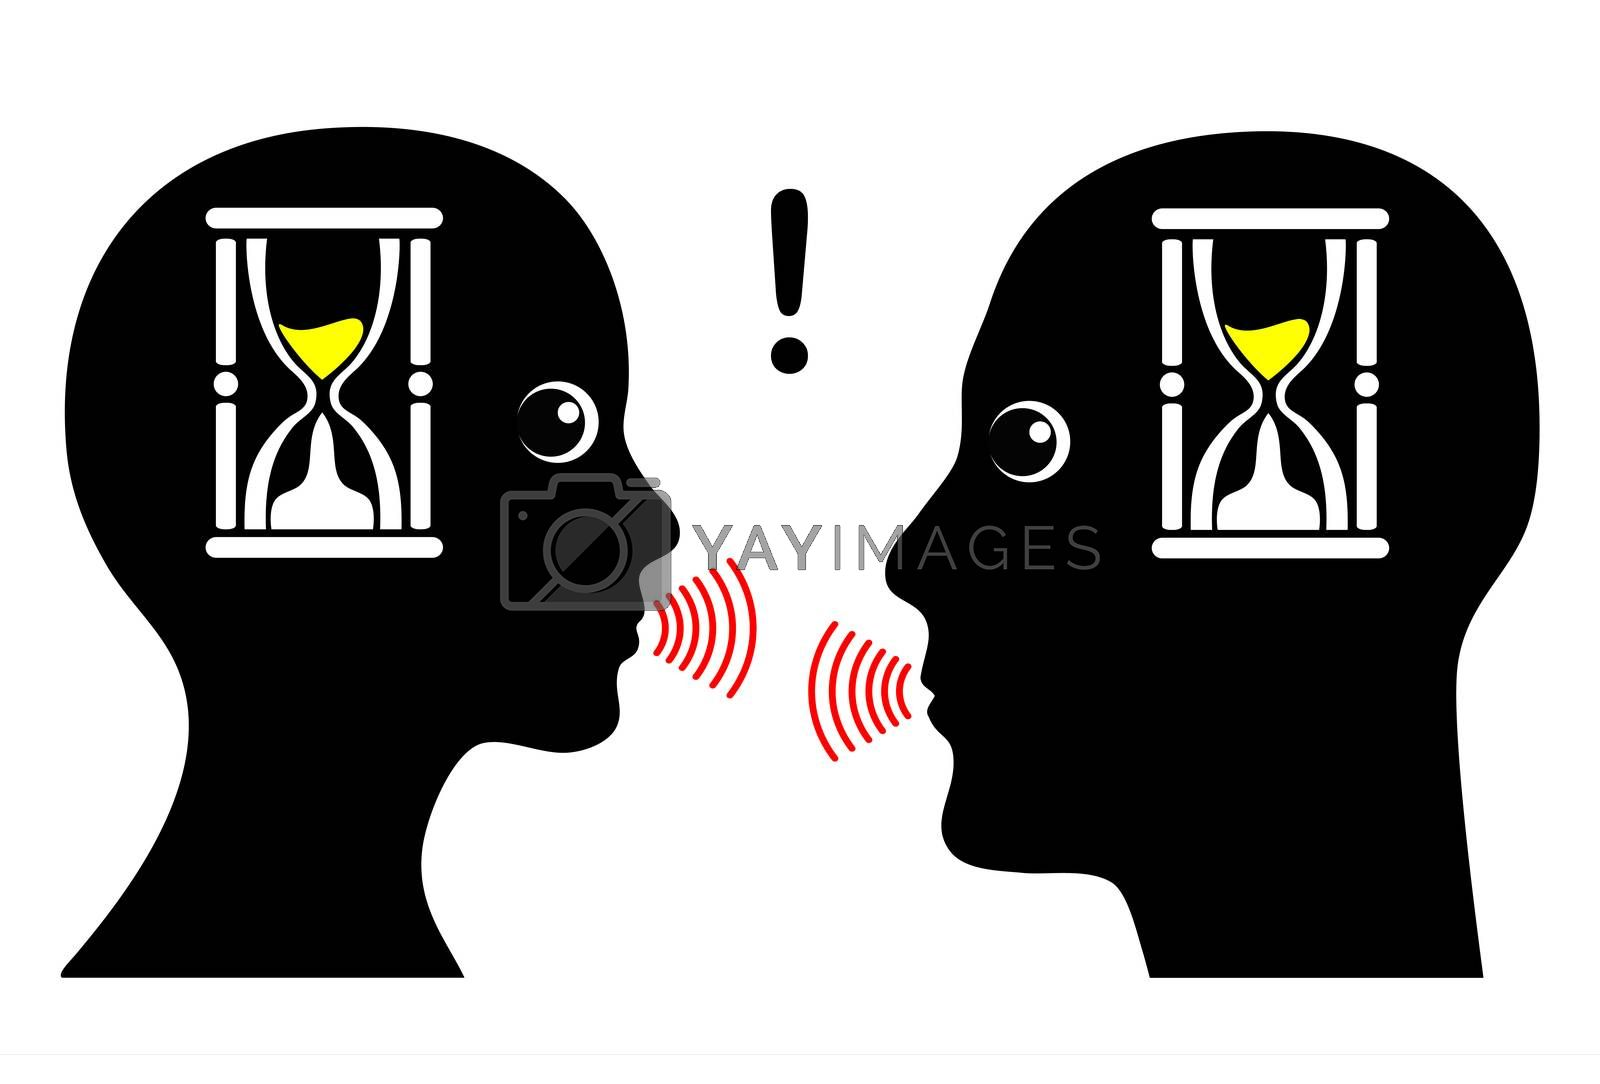 Two people talking under deadline pressure in business or private domain